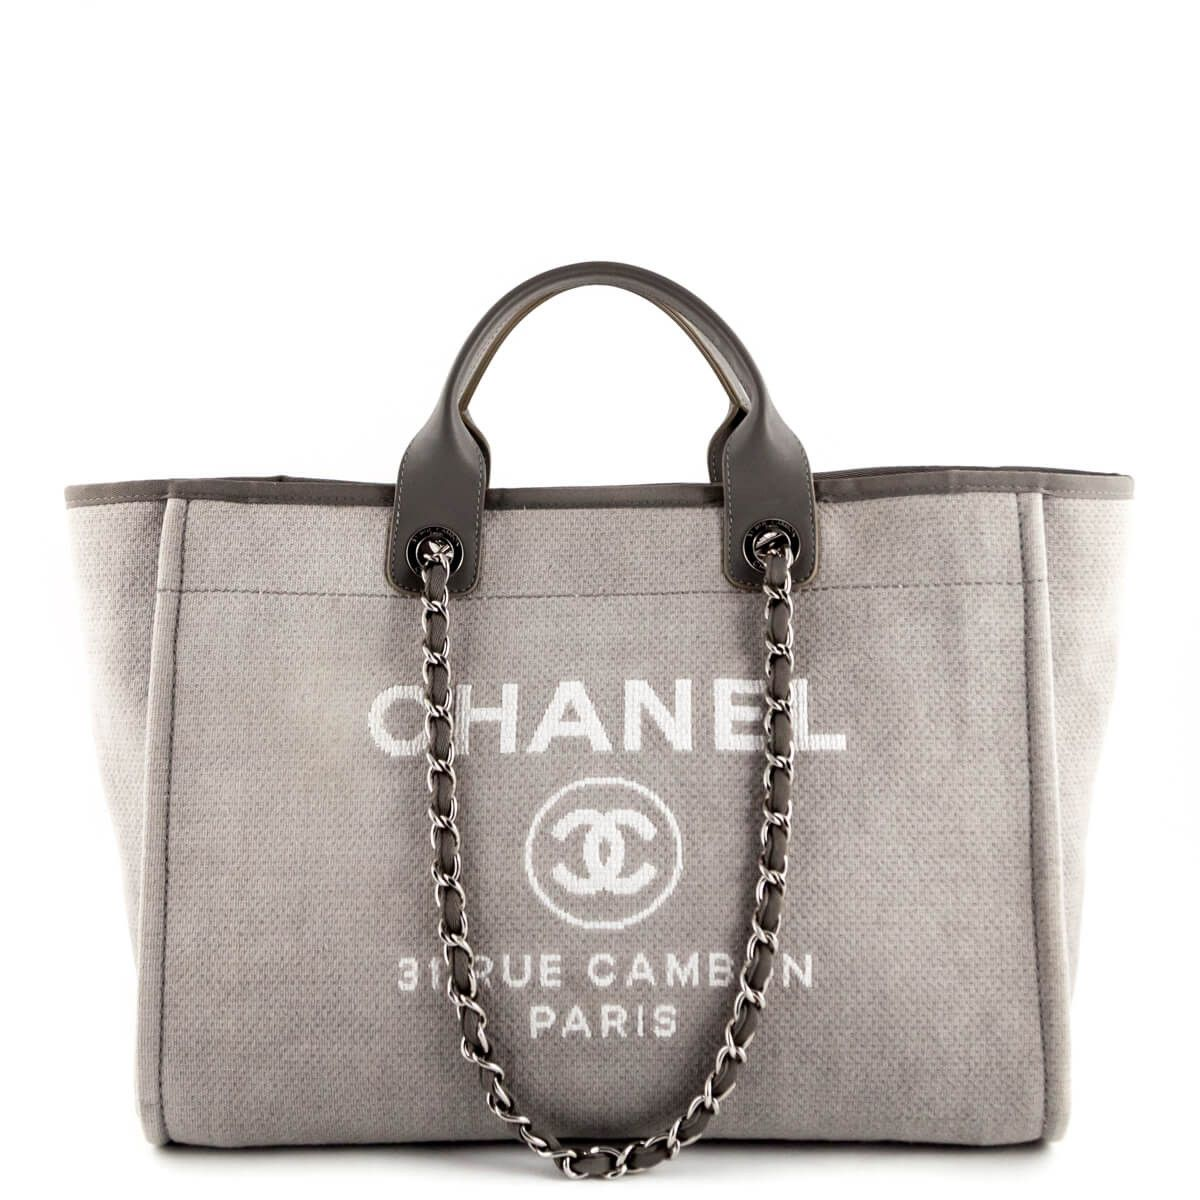 Chanel Grey Canvas Large Deauville Tote Chanel Tote Chanel Deauville Tote Bag